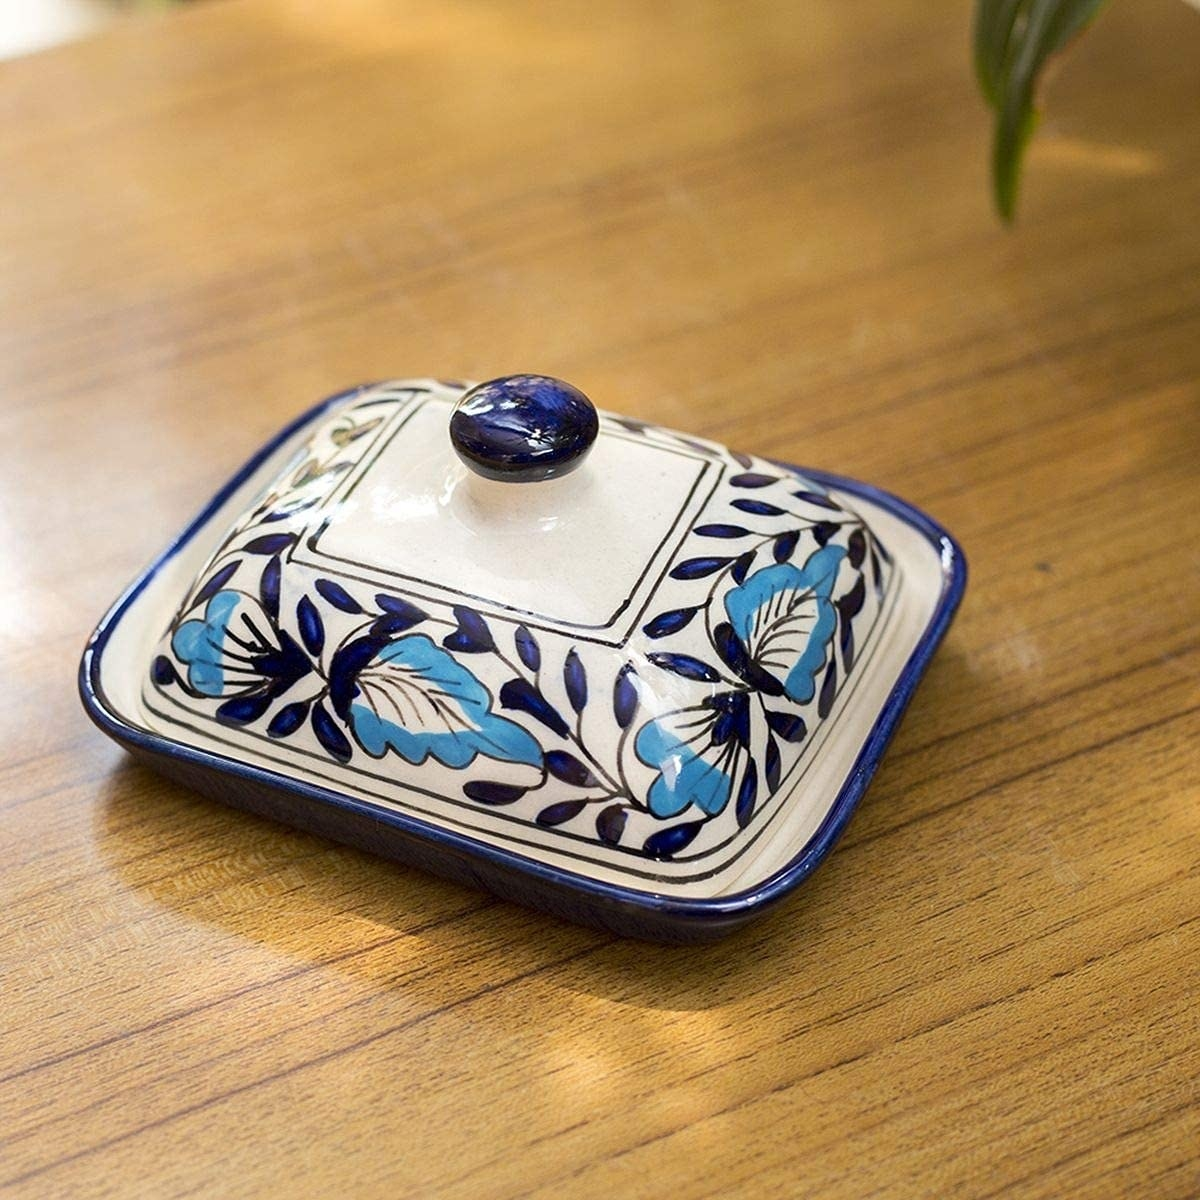 A ceramic butter dish with a blue pottery lid.